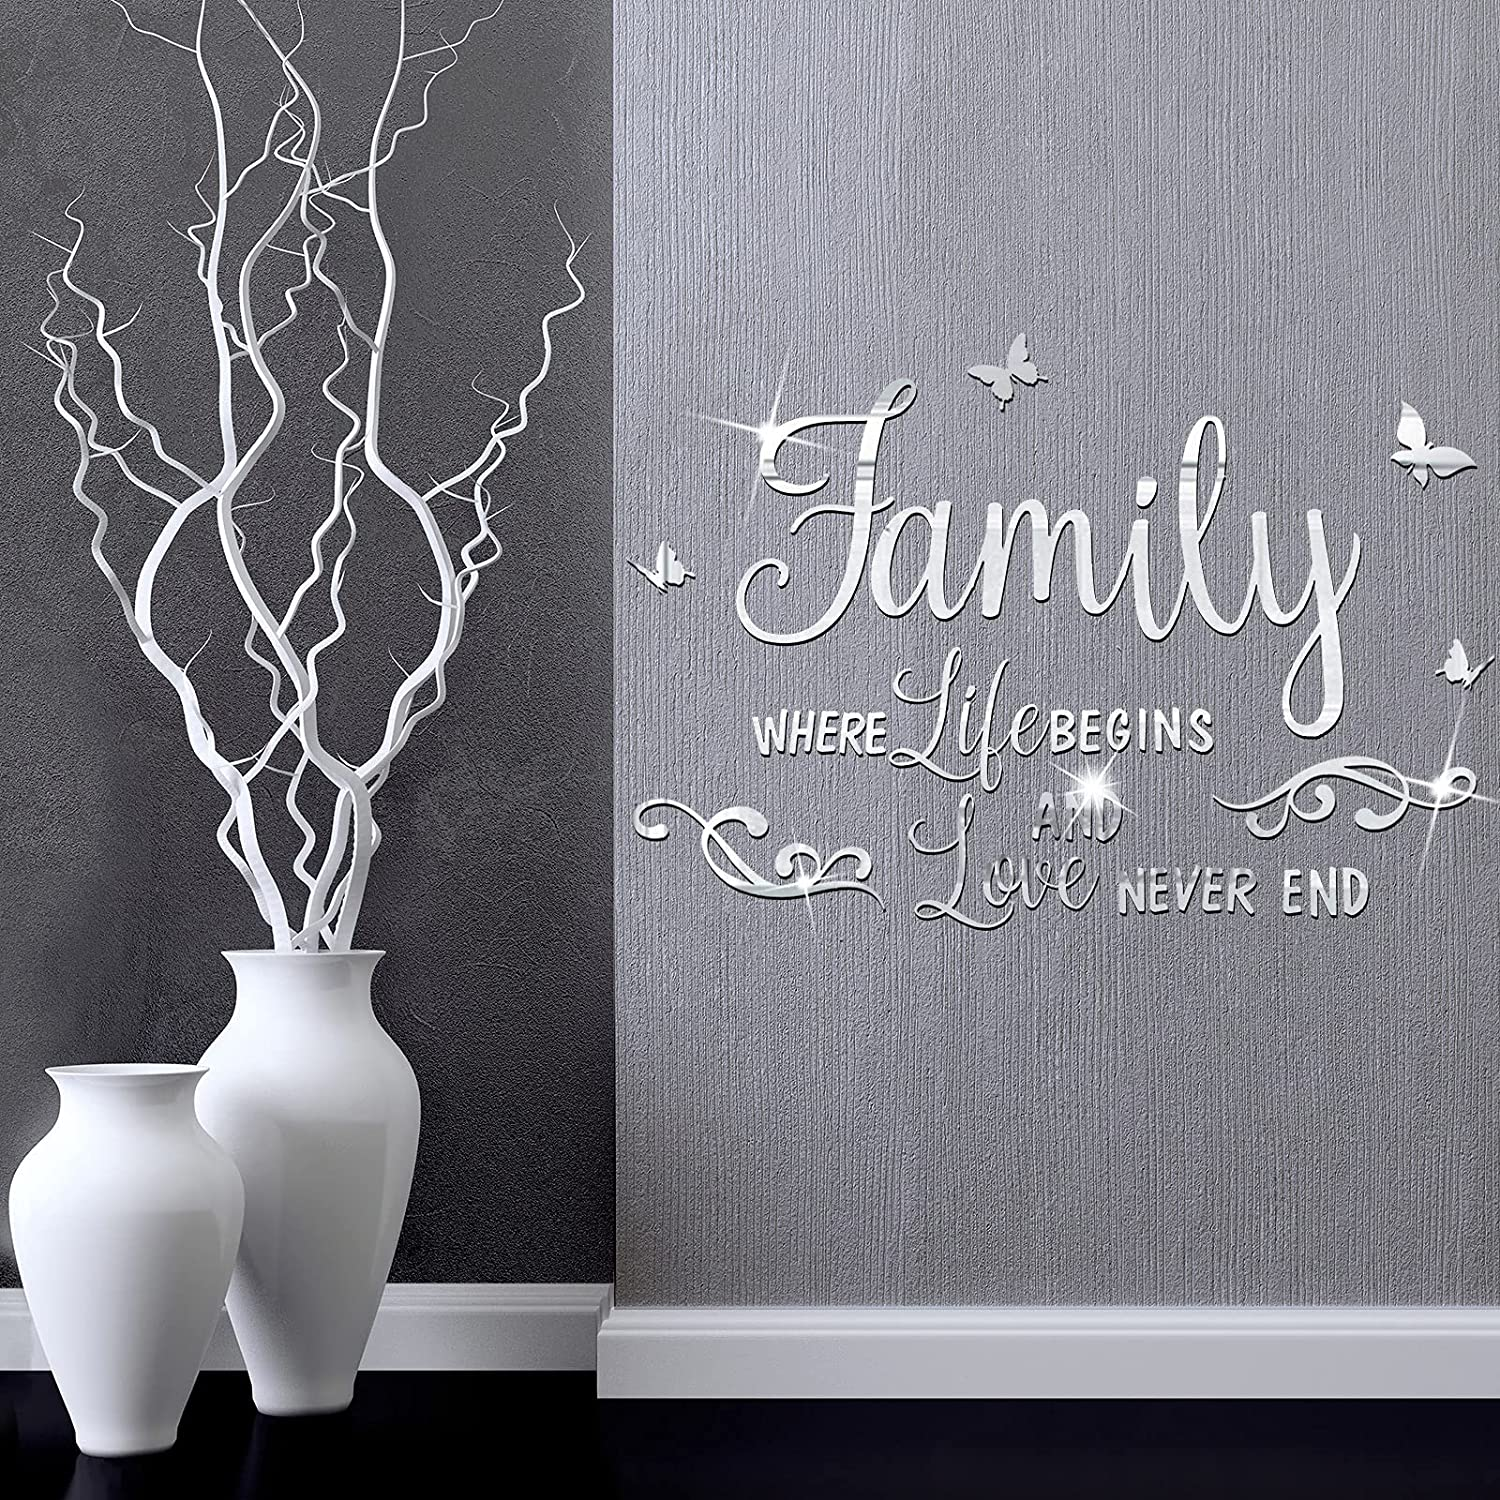 3D Acrylic Mirror Wall Decor Stickers Removable Family Letter Quotes Wall Stickers DIY Art Motivational Family Mirror Stickers for Home Office Dorm Wall Decor